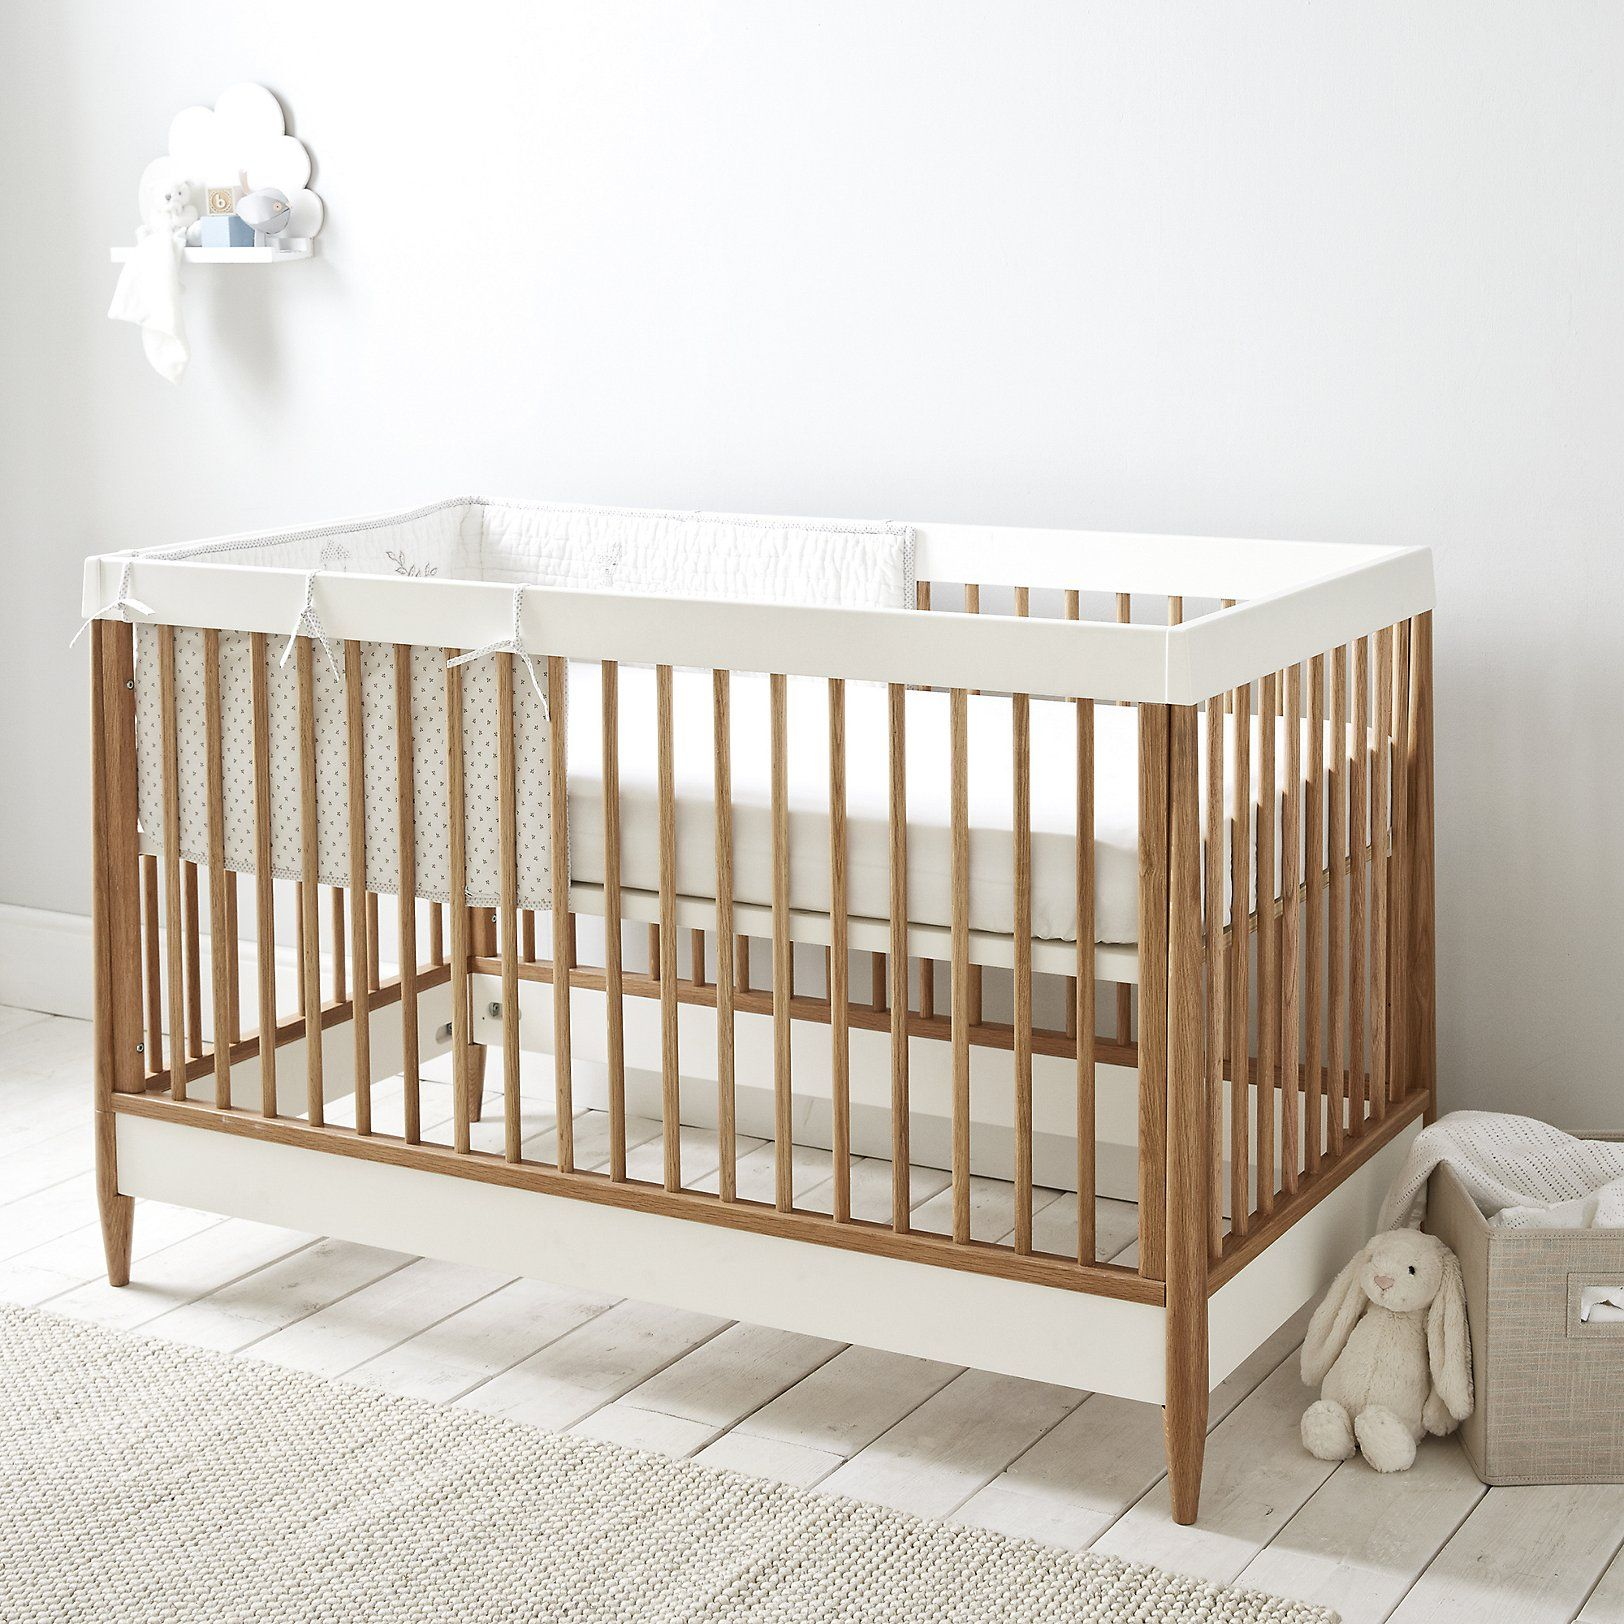 Ercol Devon Cot Bed | Nursery | Childrensu0027 Bedroom | The Little White  Company |